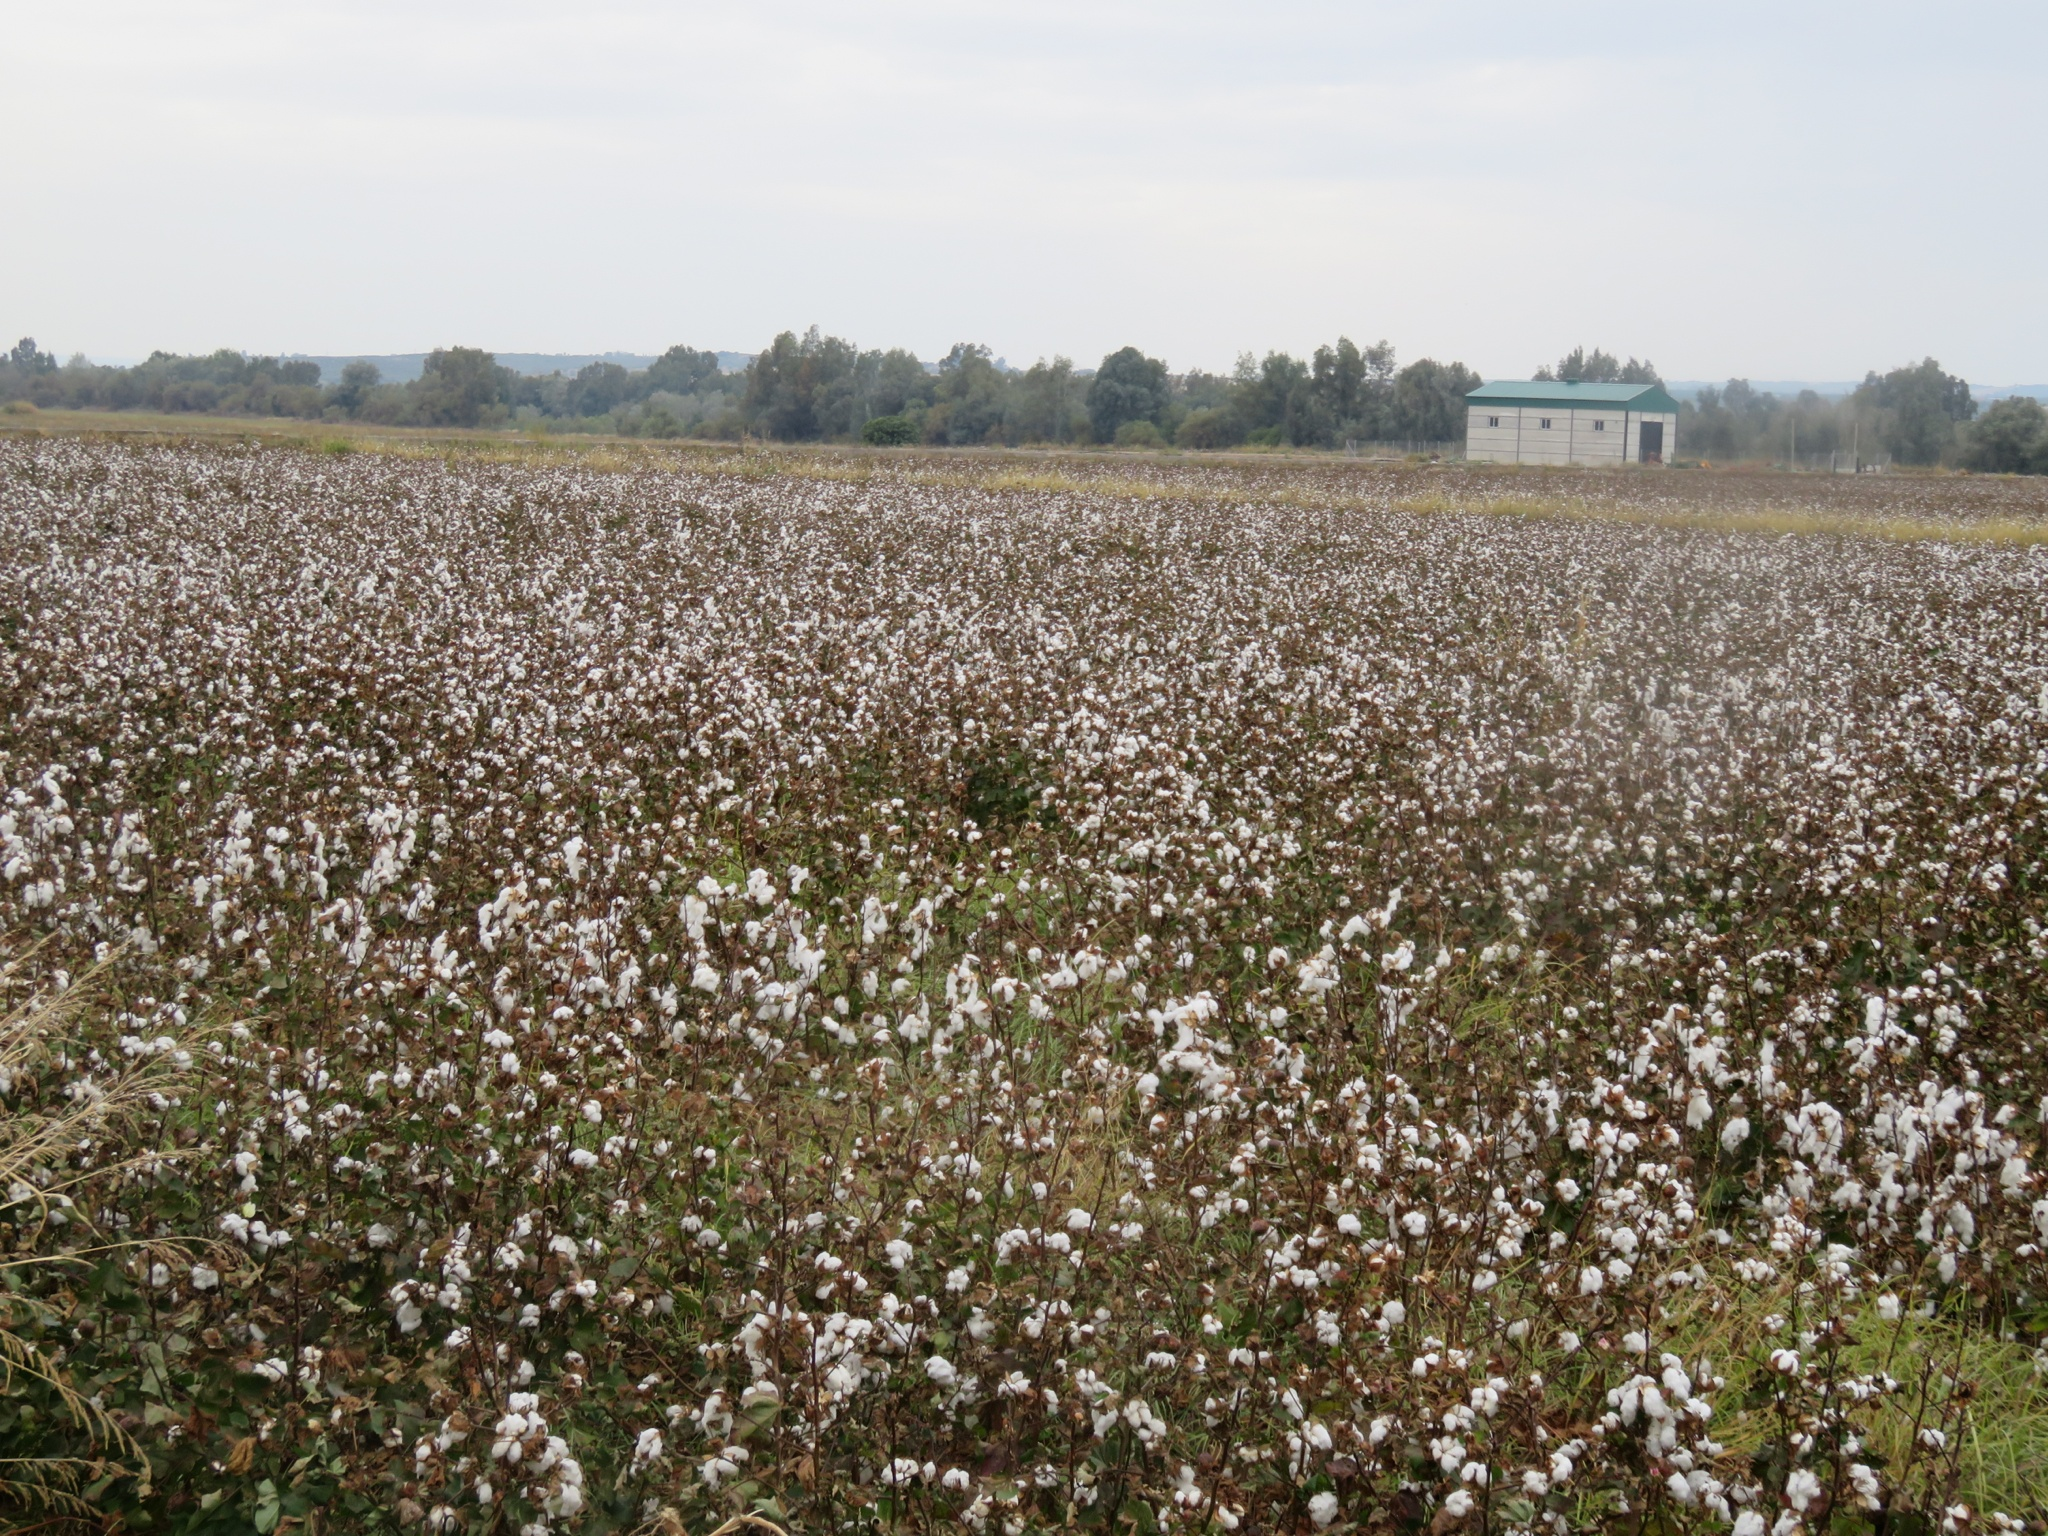 Cotton fields, ready for picking